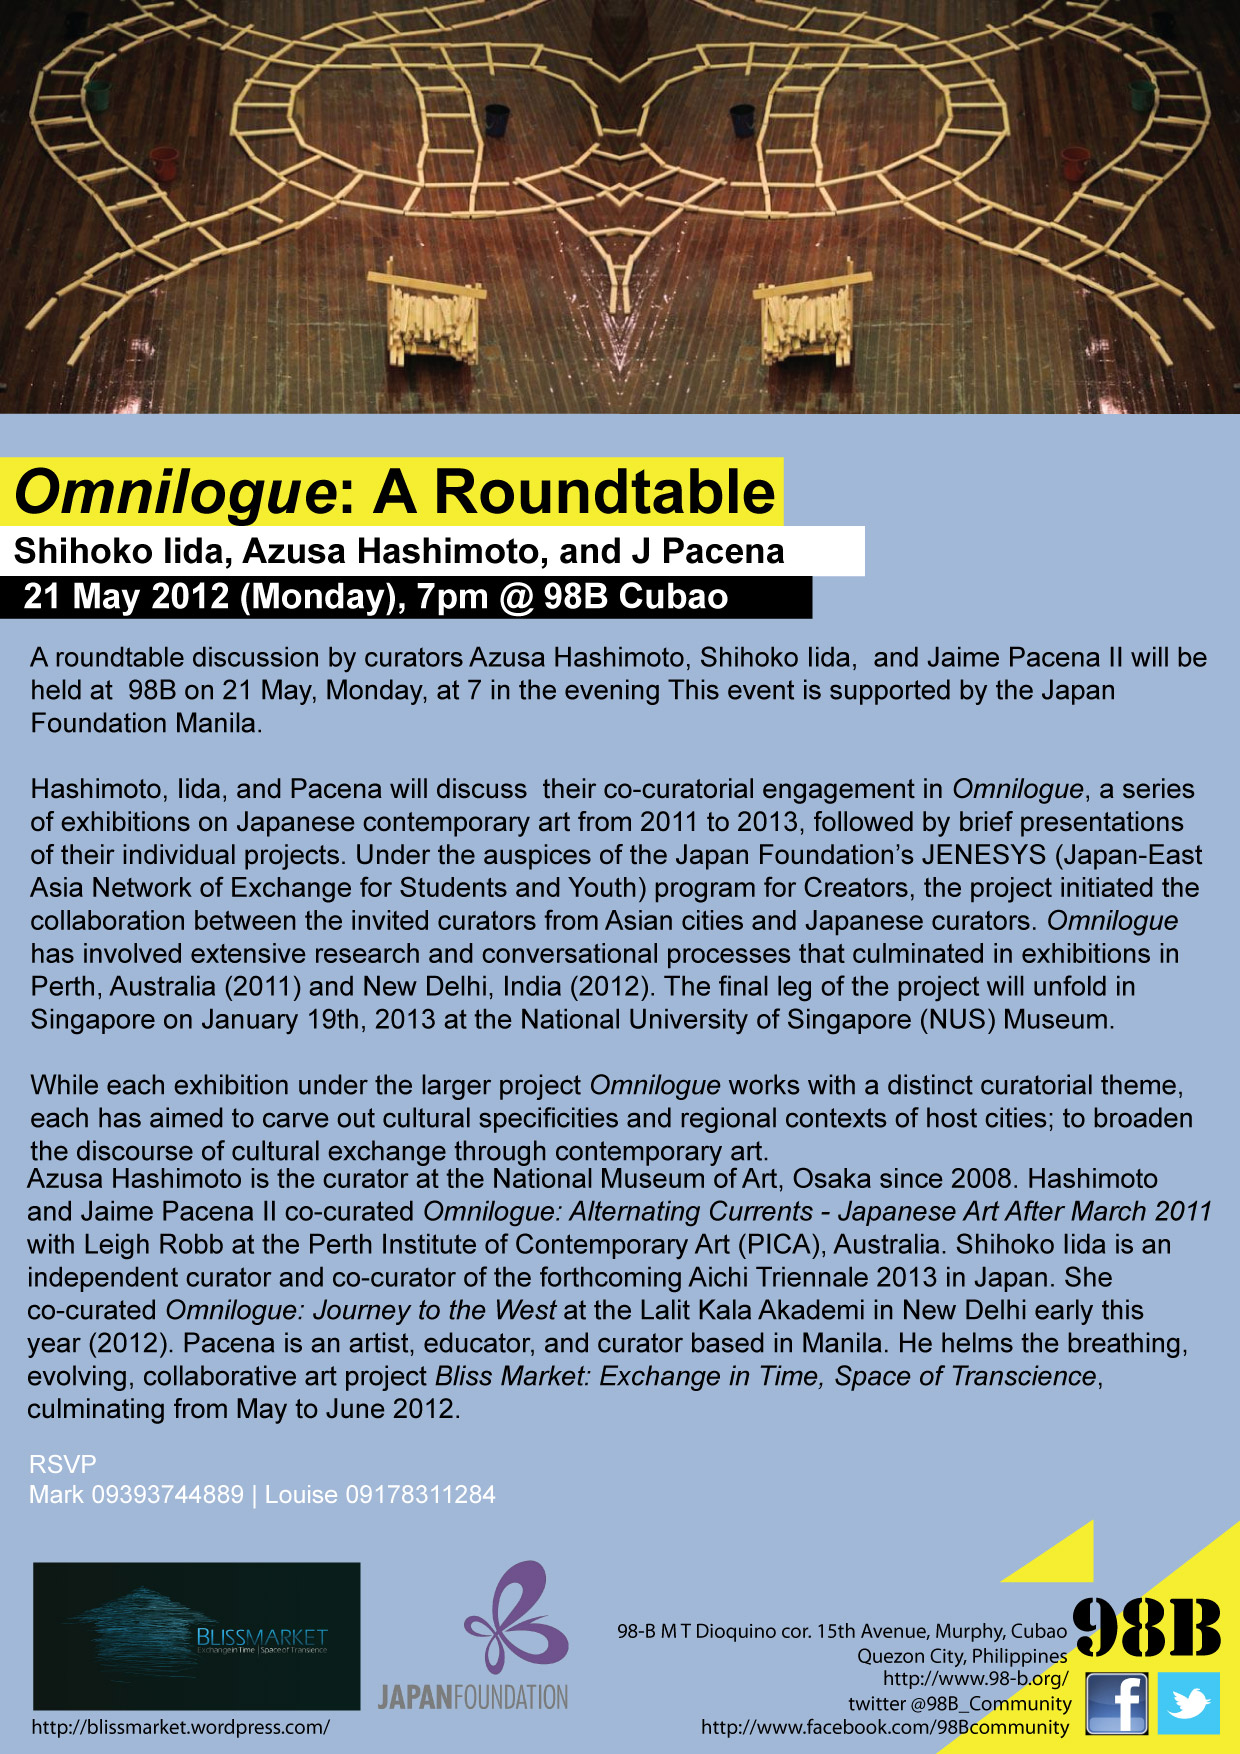 Omnilogue: A Roundtable Shihoko Iida, Azusa Hashimoto, and J Pacena 21 May 2012 (Monday), 7pm @ 98B Cubao A roundtable discussion by curators Azusa Hashimoto, Shihoko Iida,  and Jaime Pacena II will be held at  98B on 21 May, Monday, at 7 in the evening This event is supported by the Japan Foundation Manila. Hashimoto, Iida, and Pacena will discuss  their co-curatorial engagement in Omnilogue, a series of exhibitions on Japanese contemporary art from 2011 to 2013, followed by brief presentations of their individual projects. Under the auspices of the Japan Foundation's JENESYS (Japan-East Asia Network of Exchange for Students and Youth) program for Creators, the project initiated the collaboration between the invited curators from Asian cities and Japanese curators. Omnilogue has involved extensive research and conversational processes that culminated in exhibitions in Perth, Australia (2011) and New Delhi, India (2012). The final leg of the project will unfold in Singapore on January 19th, 2013 at the National University of Singapore (NUS) Museum.  While each exhibition under the larger project Omnilogue works with a distinct curatorial theme, each has aimed to carve out cultural specificities and regional contexts of host cities; to broaden the discourse of cultural exchange through contemporary art.  Azusa Hashimoto is the curator at the National Museum of Art, Osaka since 2008. Hashimoto and Jaime Pacena II co-curated Omnilogue: Alternating Currents - Japanese Art After March 2011 with Leigh Robb at the Perth Institute of Contemporary Art (PICA), Australia. Shihoko Iida is an independent curator and co-curator of the forthcoming Aichi Triennale 2013 in Japan. She co-curated Omnilogue: Journey to the West at the Lalit Kala Akademi in New Delhi early this year (2012). Pacena is an artist, educator, and curator based in Manila. He helms the breathing, evolving, collaborative art project Bliss Market: Exchange in Time, Space of Transcience, culminating from May to June 2012.   RSVP  Mark 09393744889 | Louise 09178311284 98-B M T Dioquino cor. 15th Avenue, Murphy, Cubao Quezon City, Philippines